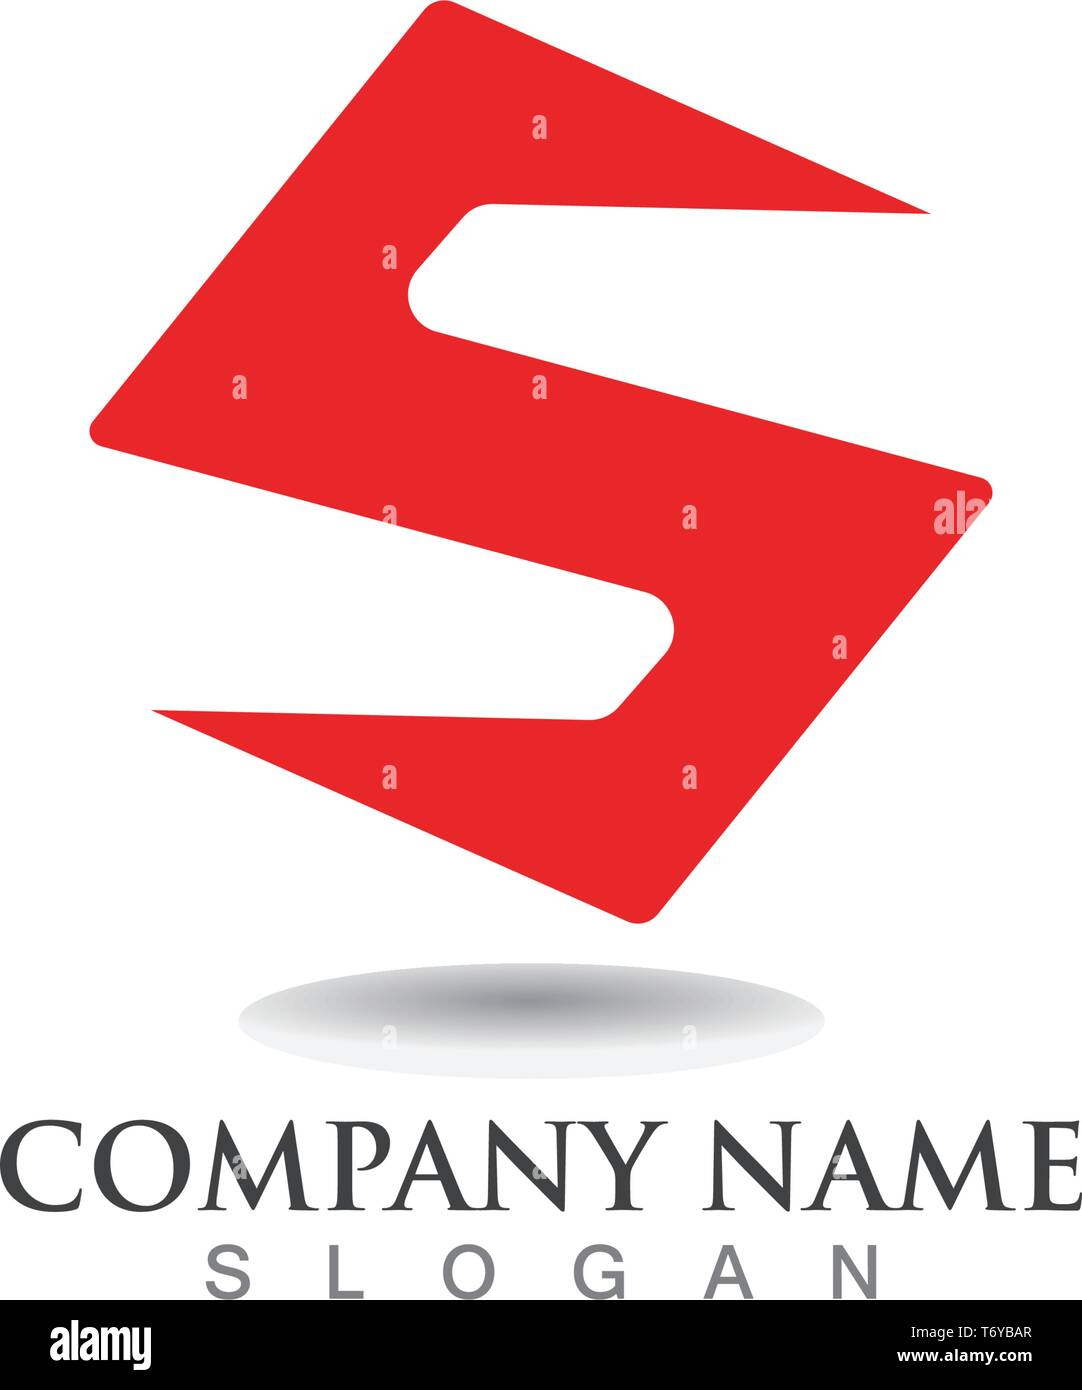 S logo and symbols template vector - Stock Image